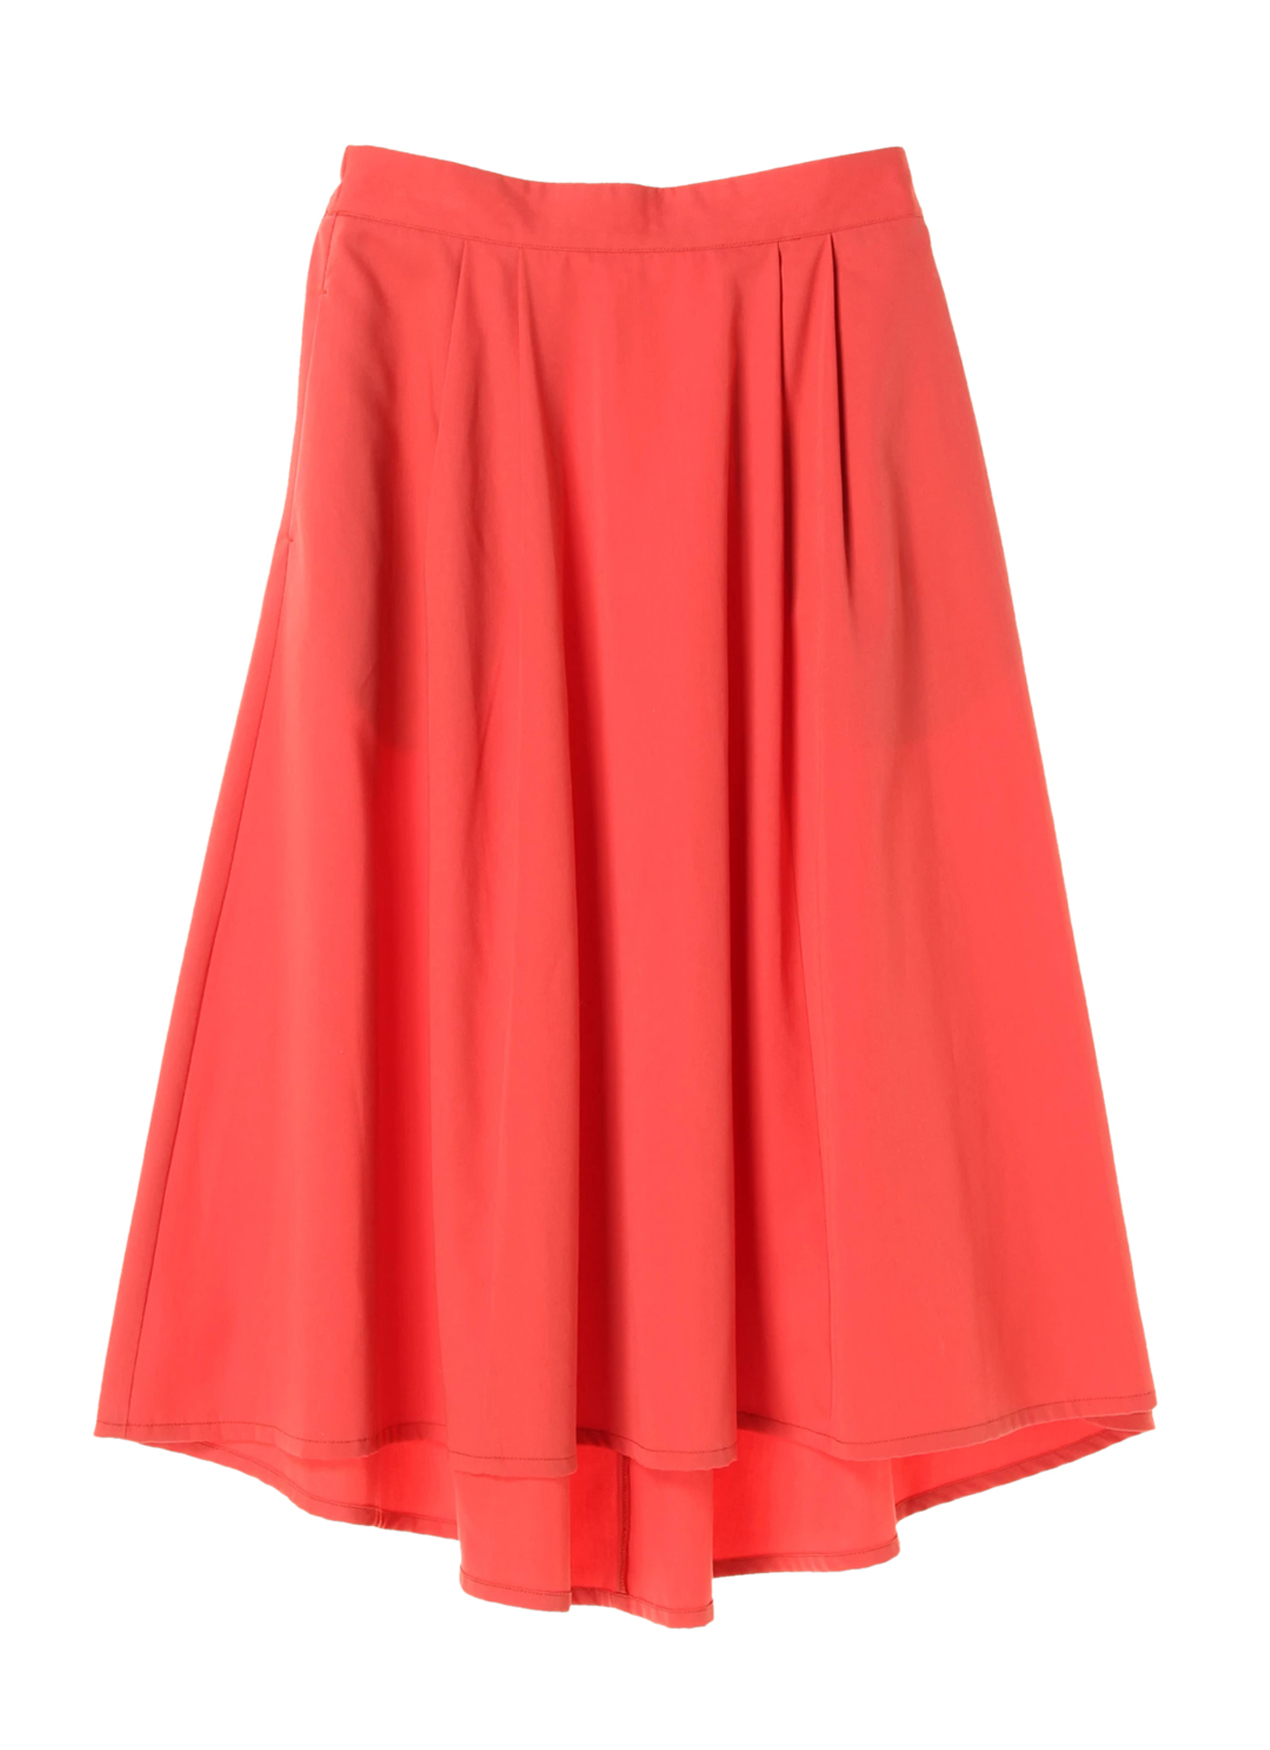 Green Parks Emily Circle Skirt - Red